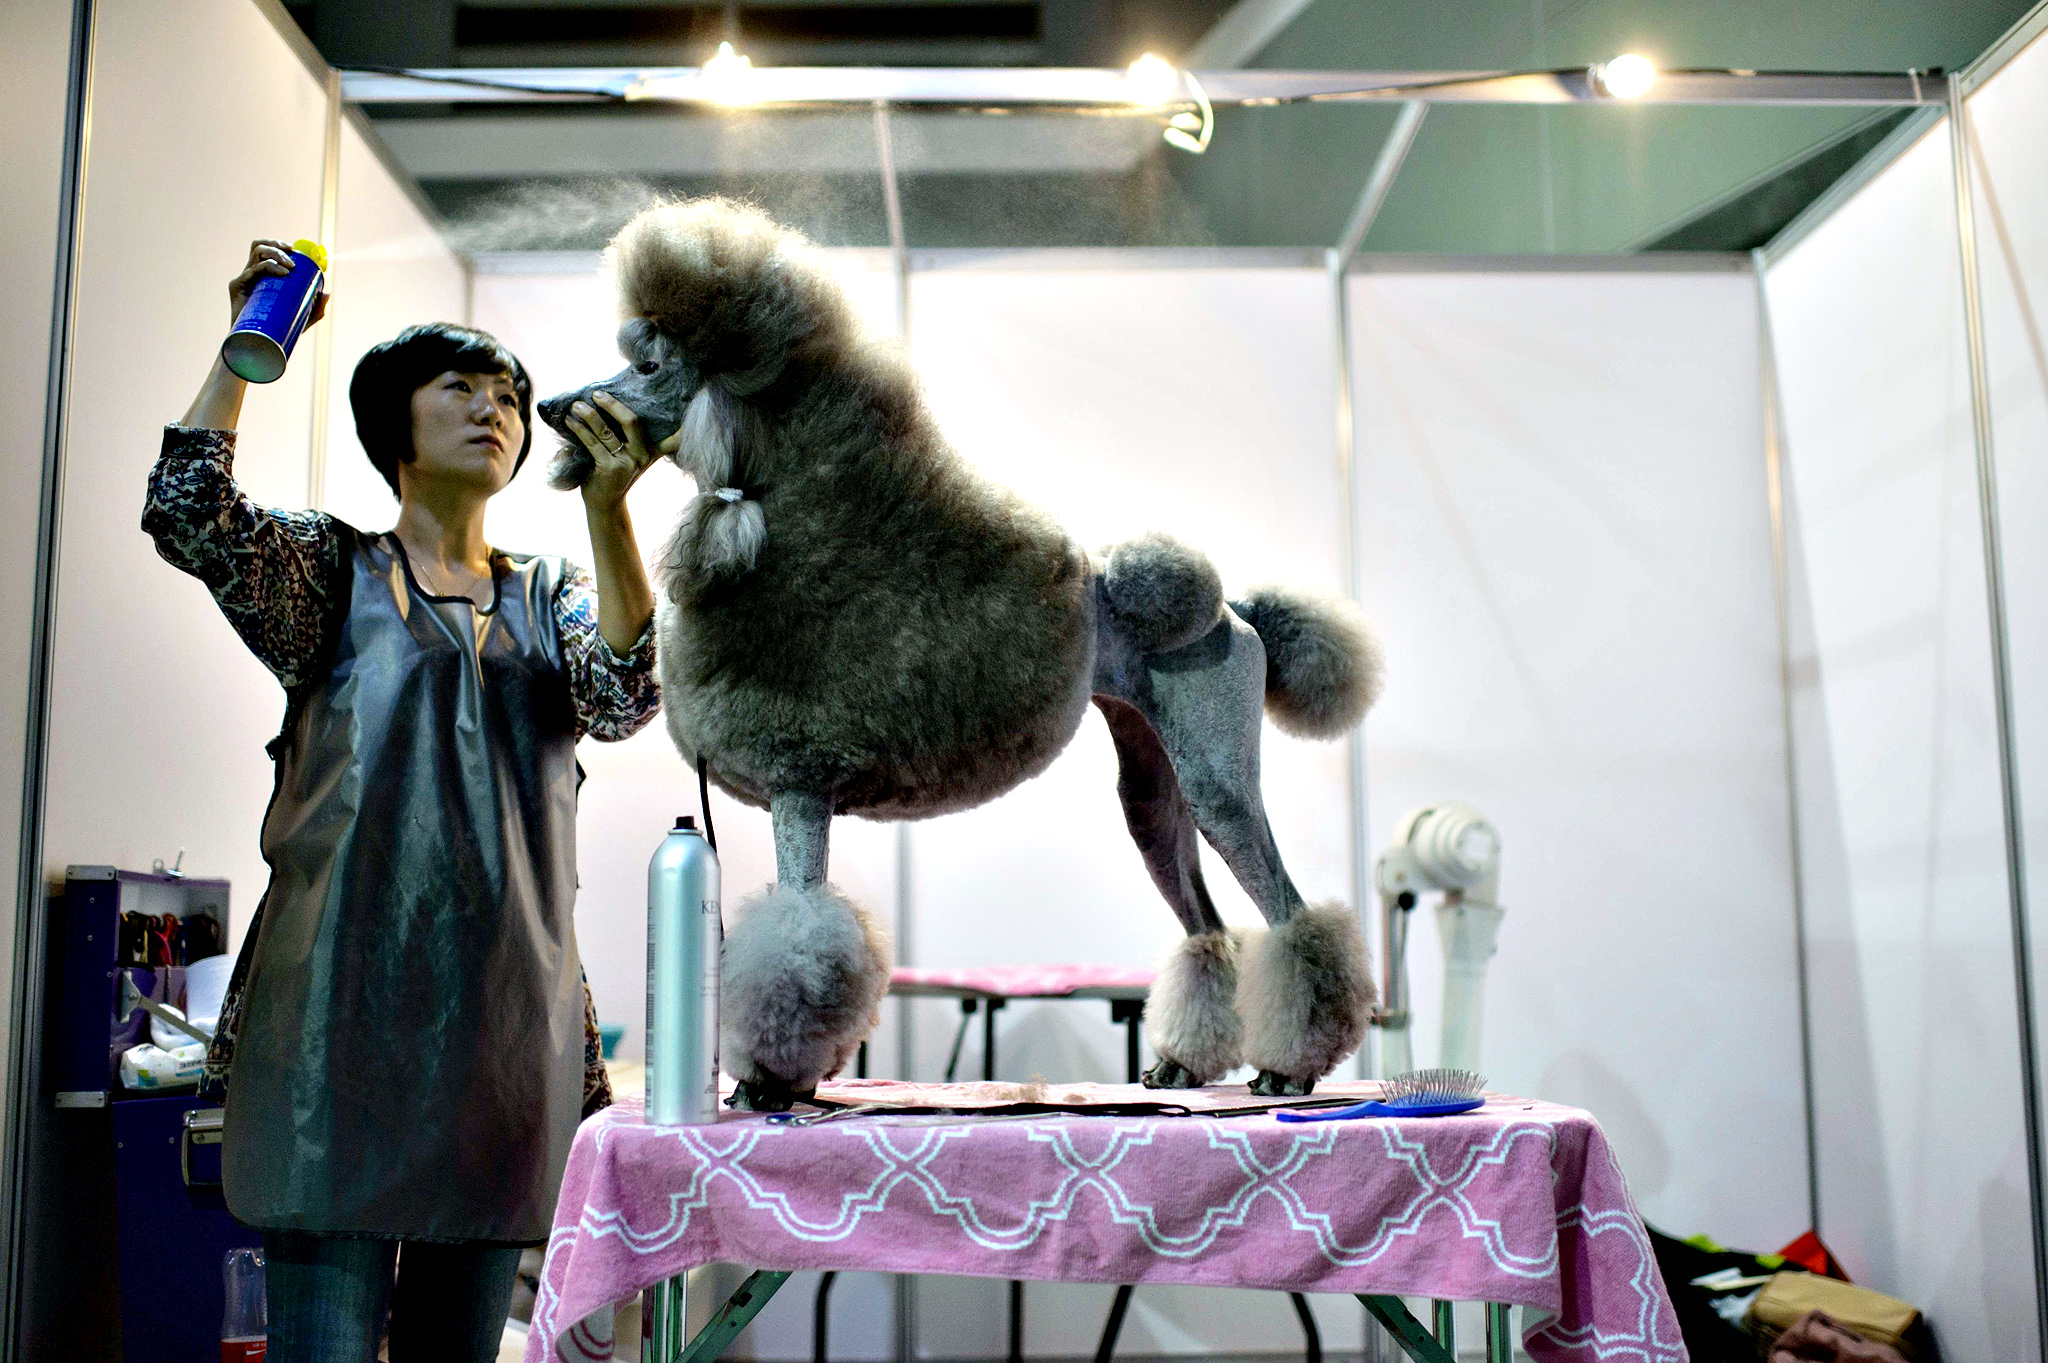 A dog owner sprays hairspray on her poodle backstage at a dog show in Seoul. Some 2000 dogs took part in the three-day show organised by the Korea Kennel Federation which was celebrating its 58th anniversary. Dog ownership in South Korea is a growing industry widely reported to have passed 10 million in 2013, with private expenditure on pet supplies increasing some 14 percent per year since 2000, according to a report by the Nonghyup Economic Research Institute.